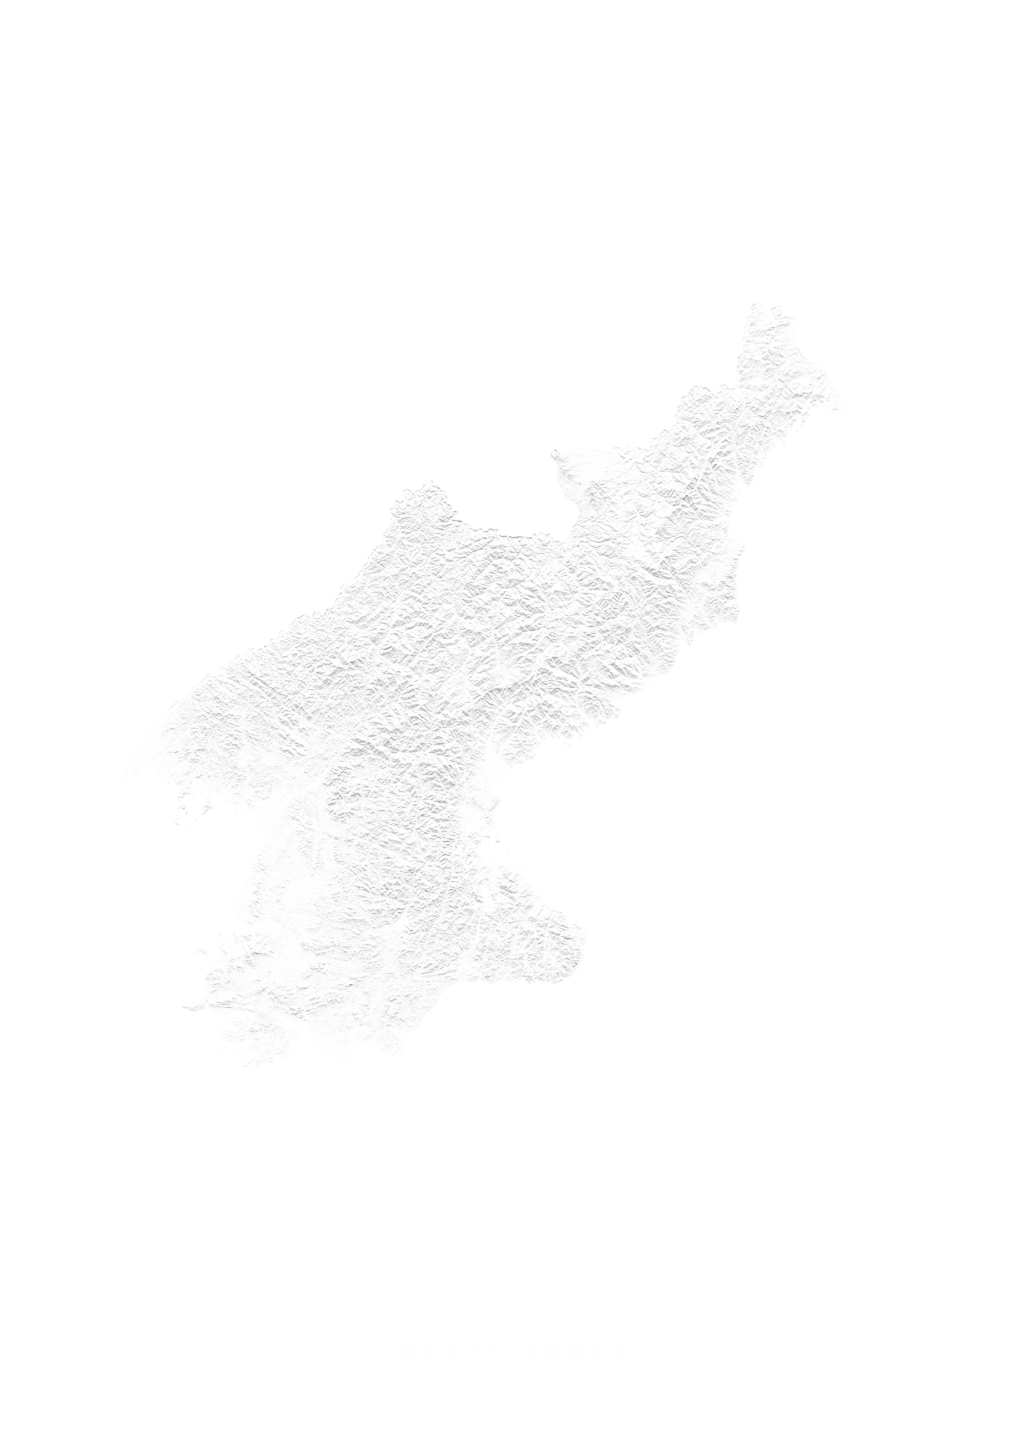 North Korea wall map